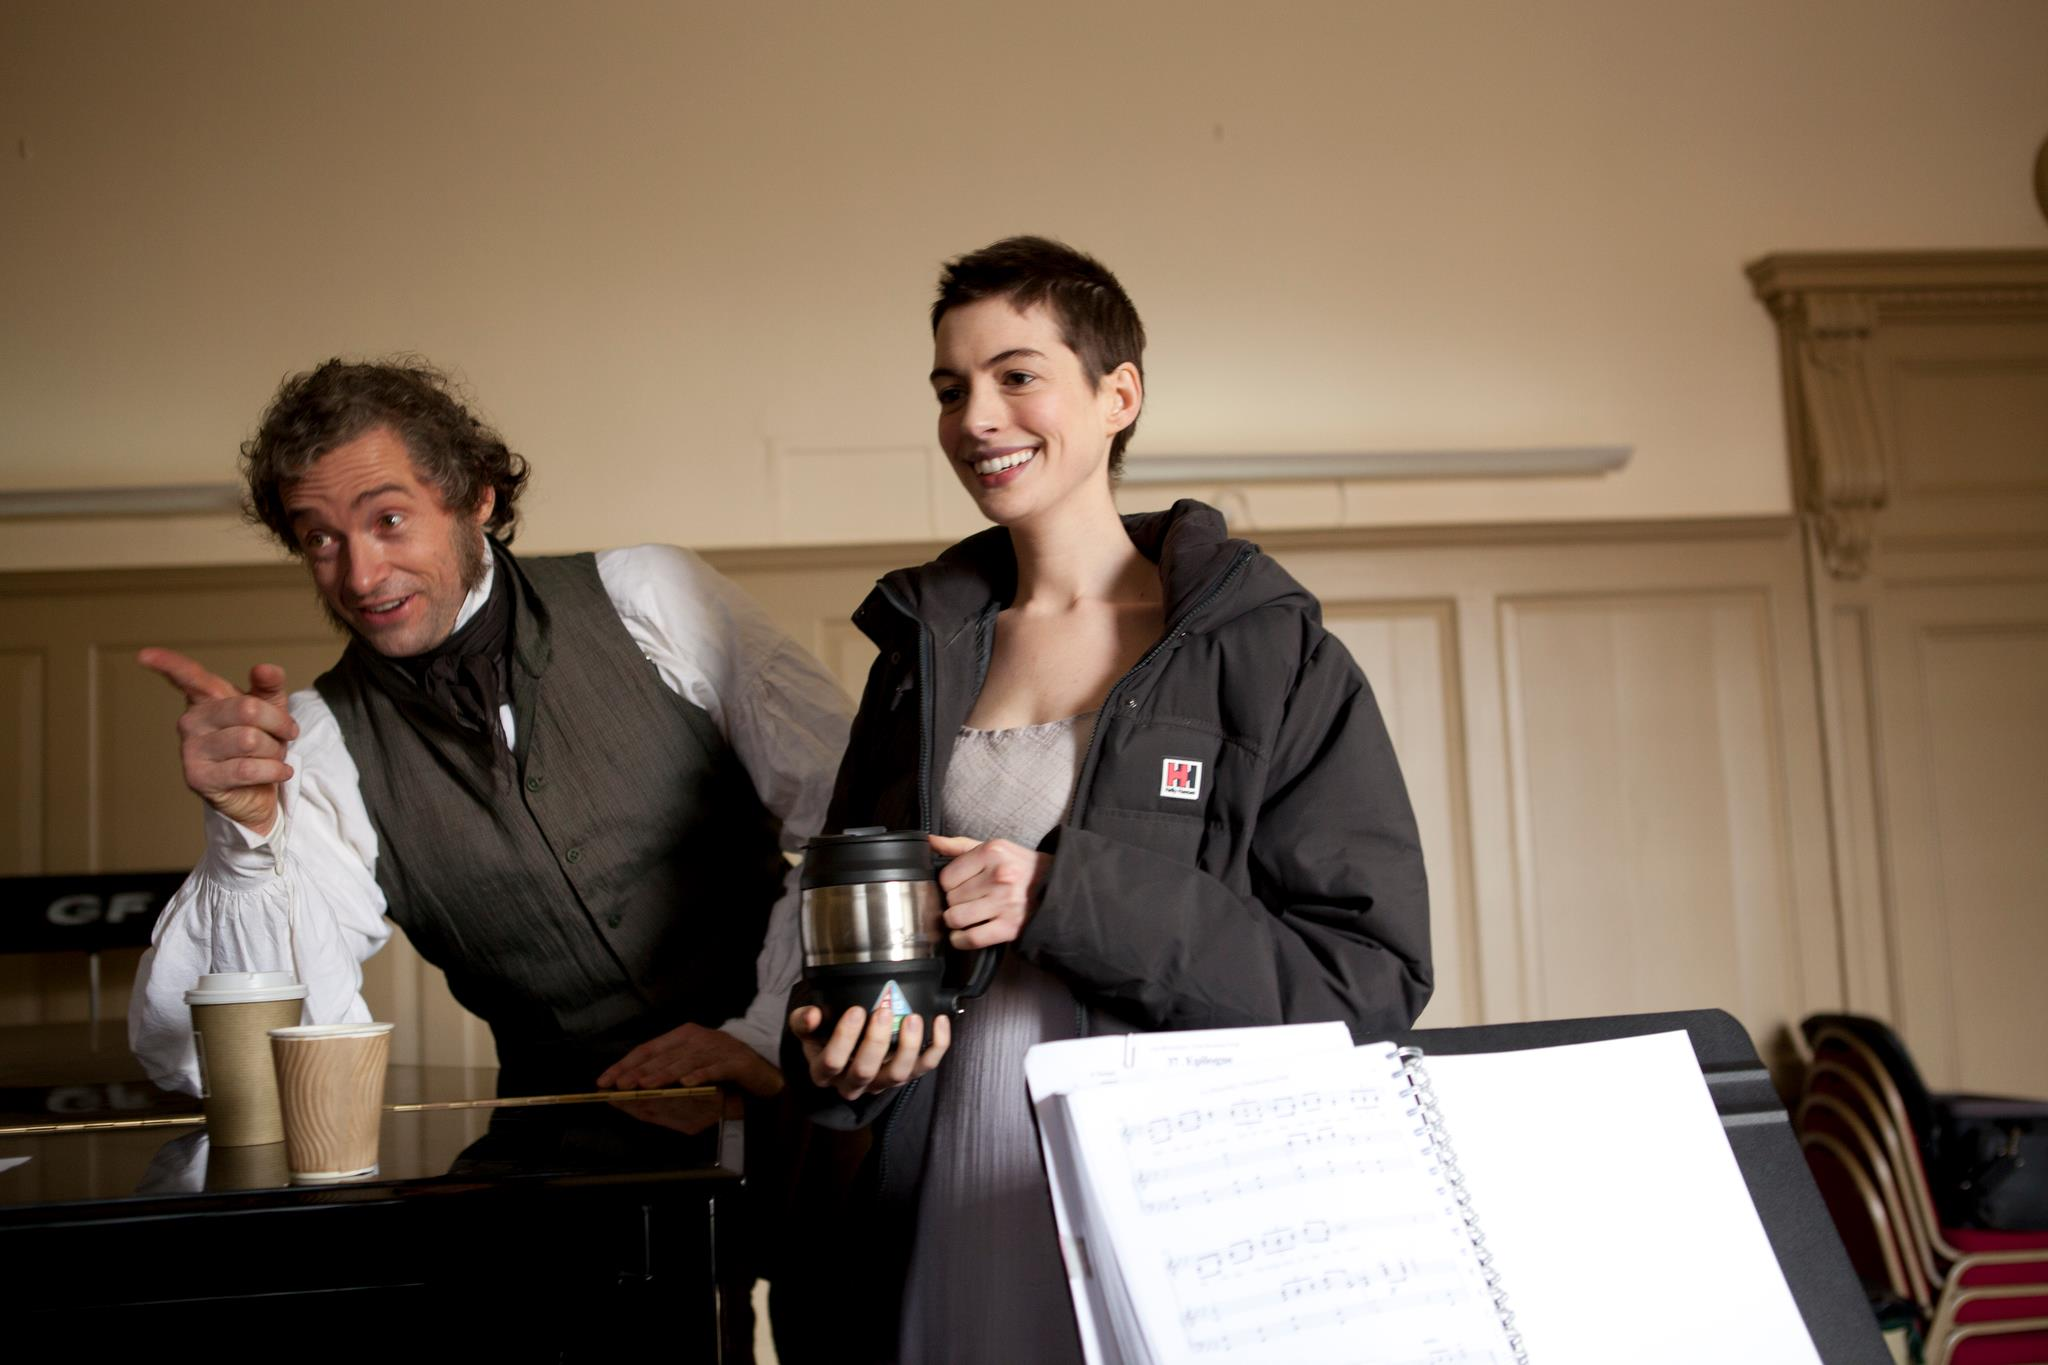 Les Miserables Behind the Scenes